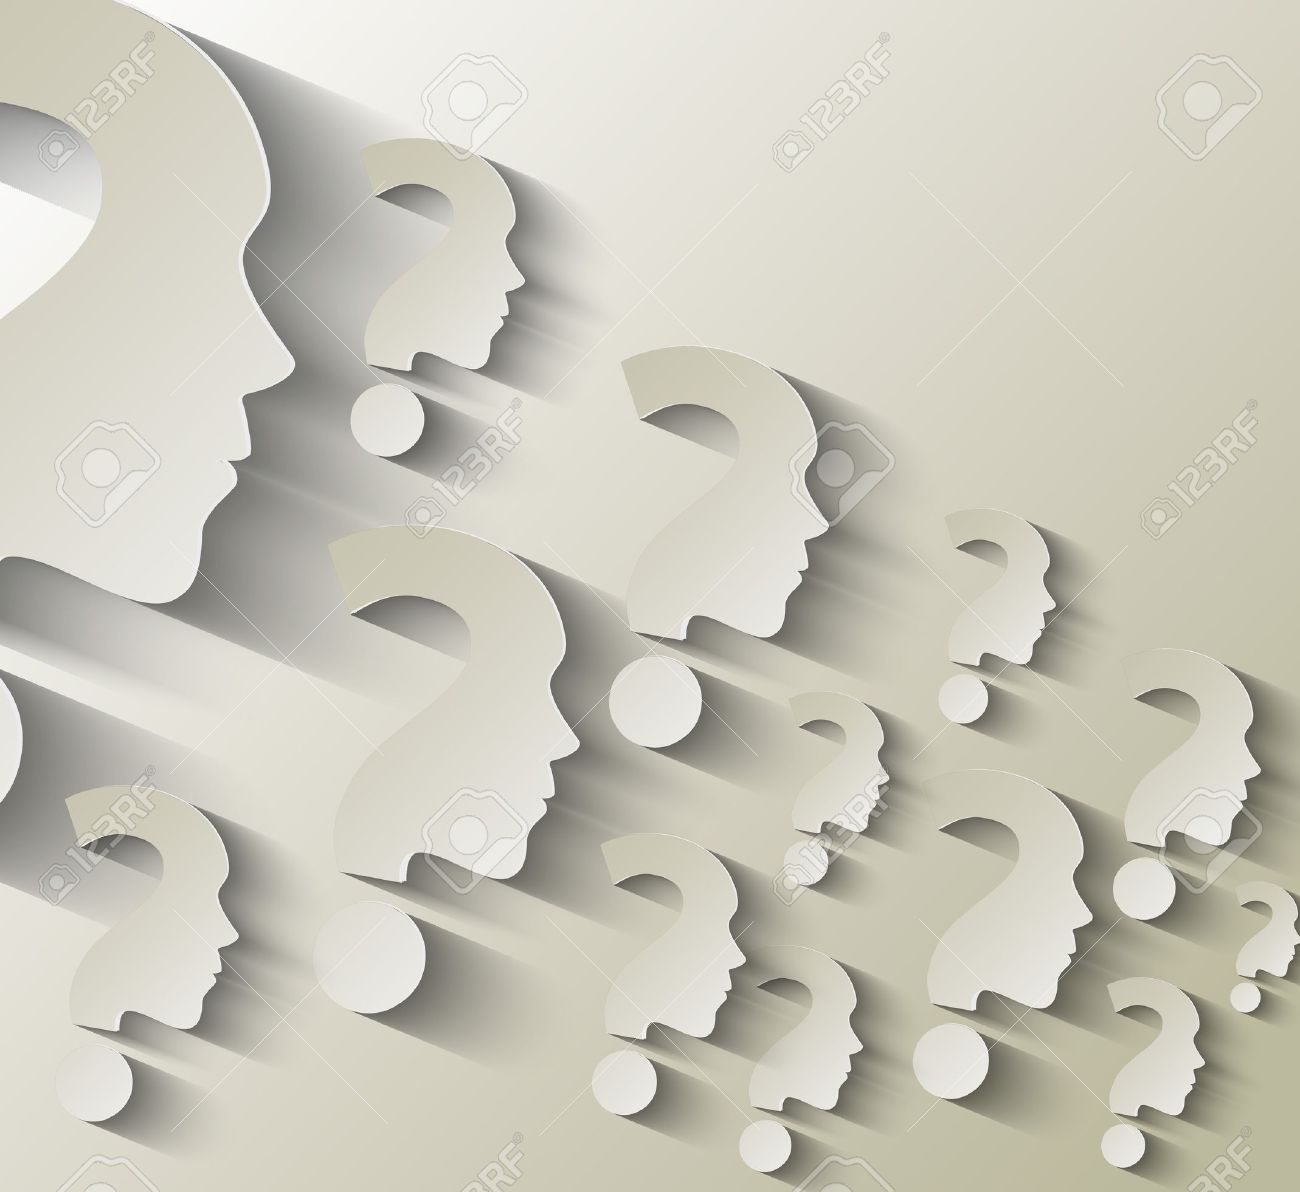 Human face with question mark illustration on white background Stock Vector - 18559322